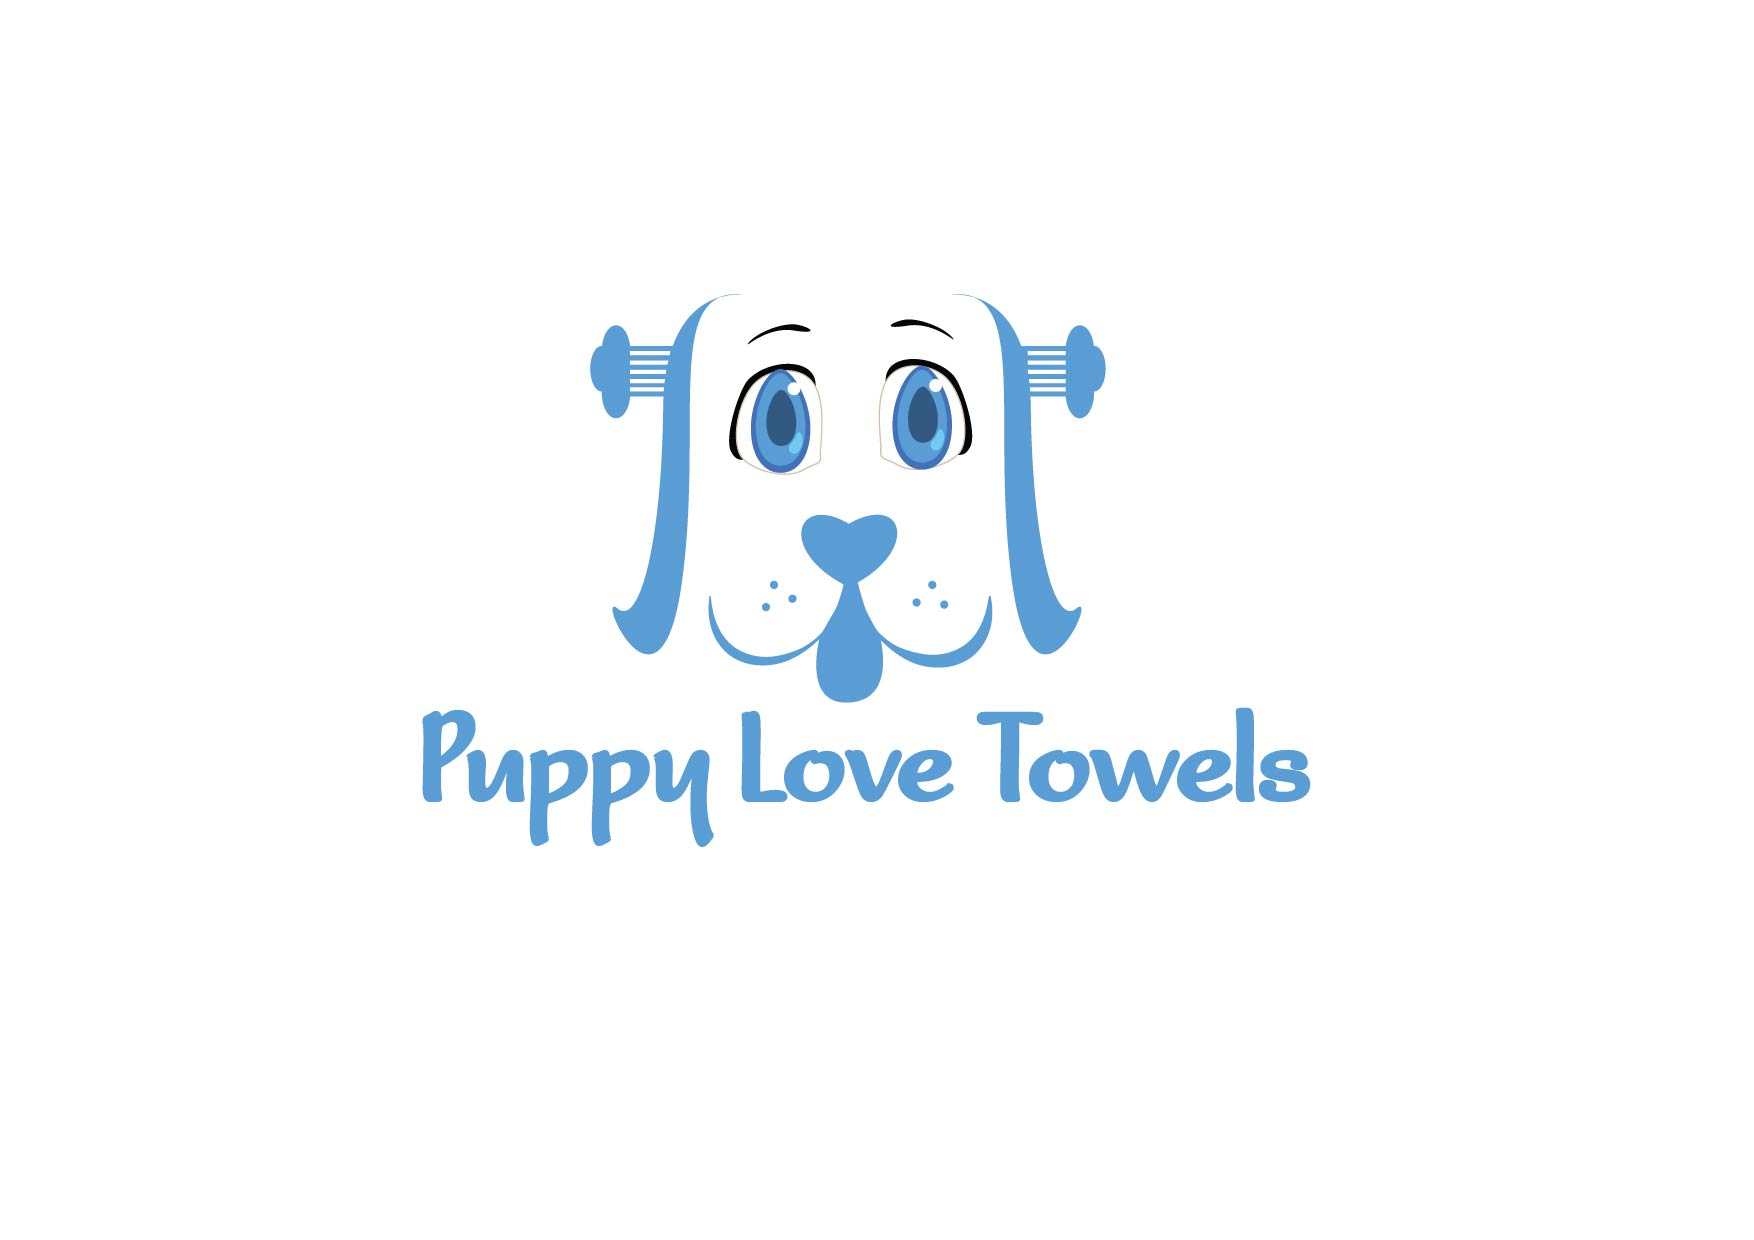 Logo Design by Yash Sindhav - Entry No. 14 in the Logo Design Contest Artistic Logo Design for Puppy Love Towels.